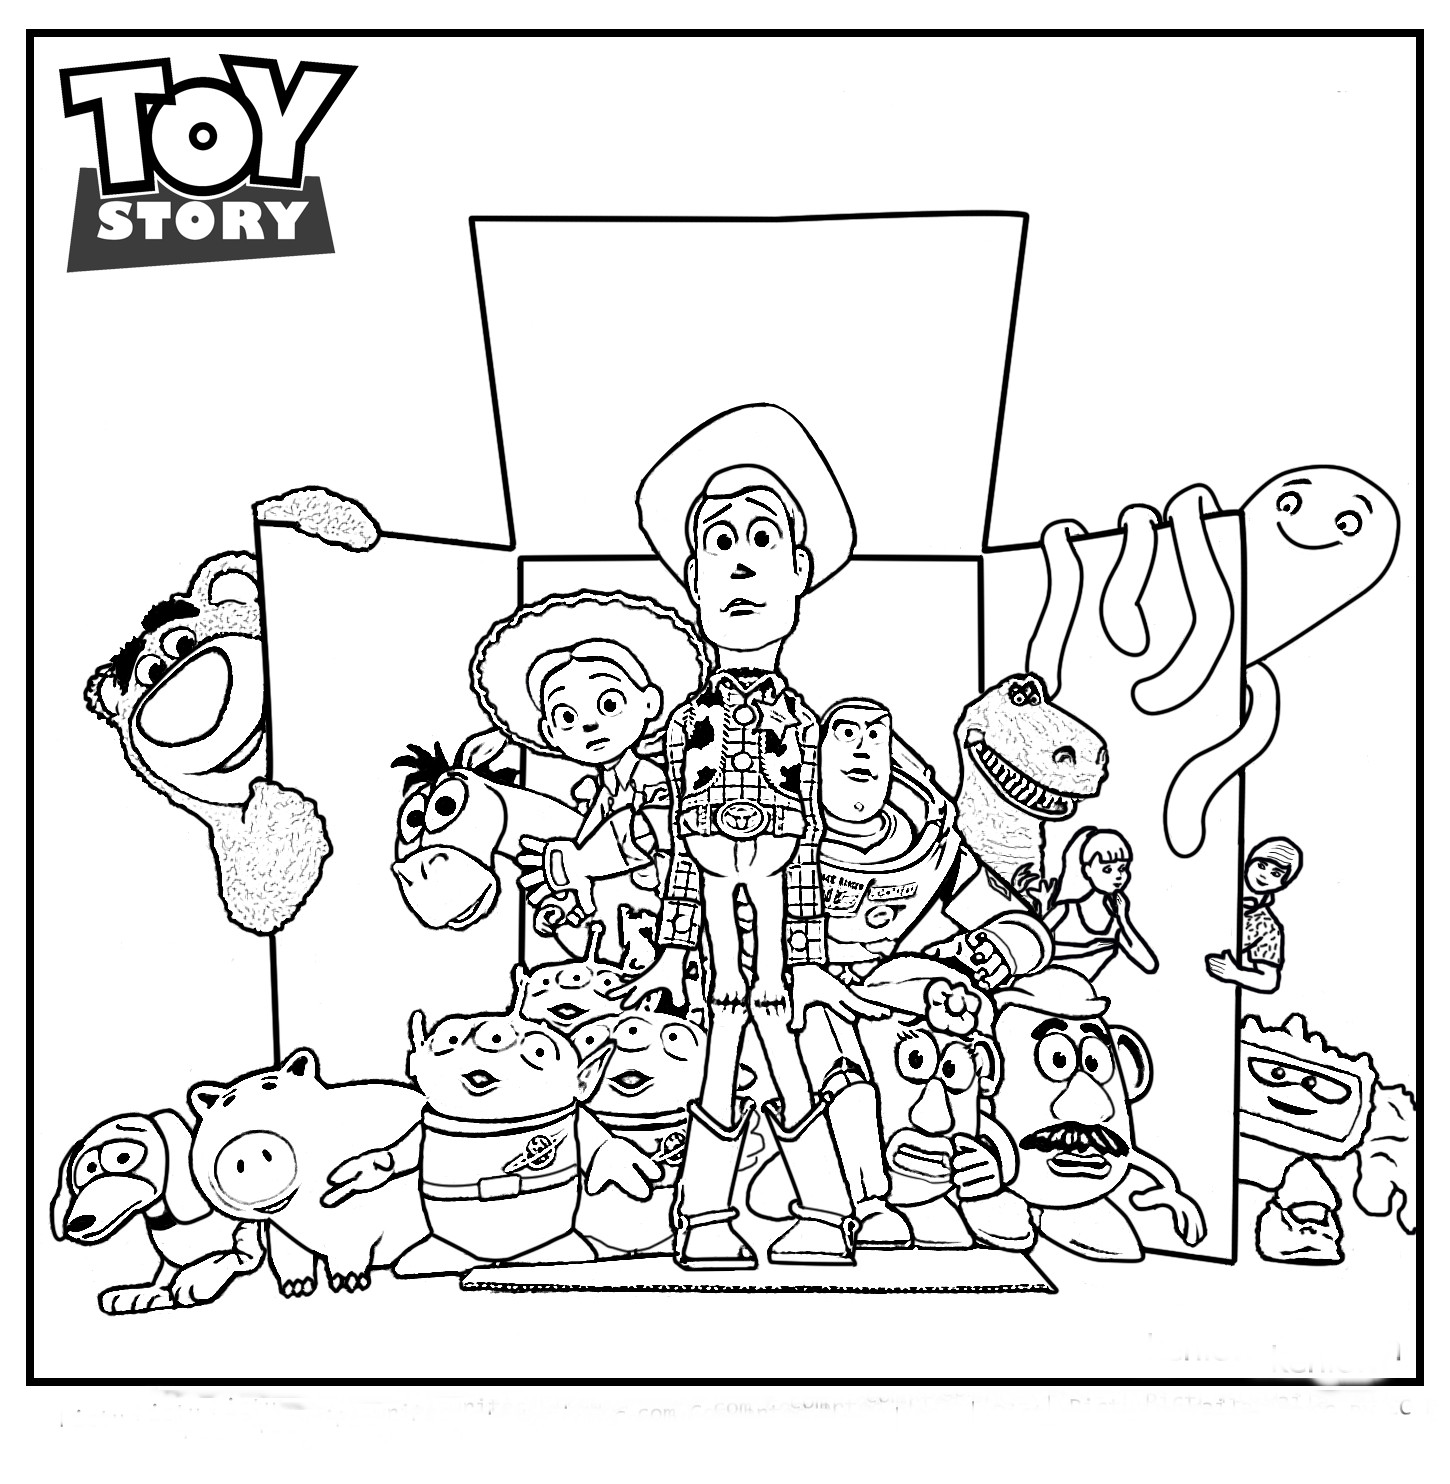 1450x1484 Coloring Pages Toy Story Wagashiya